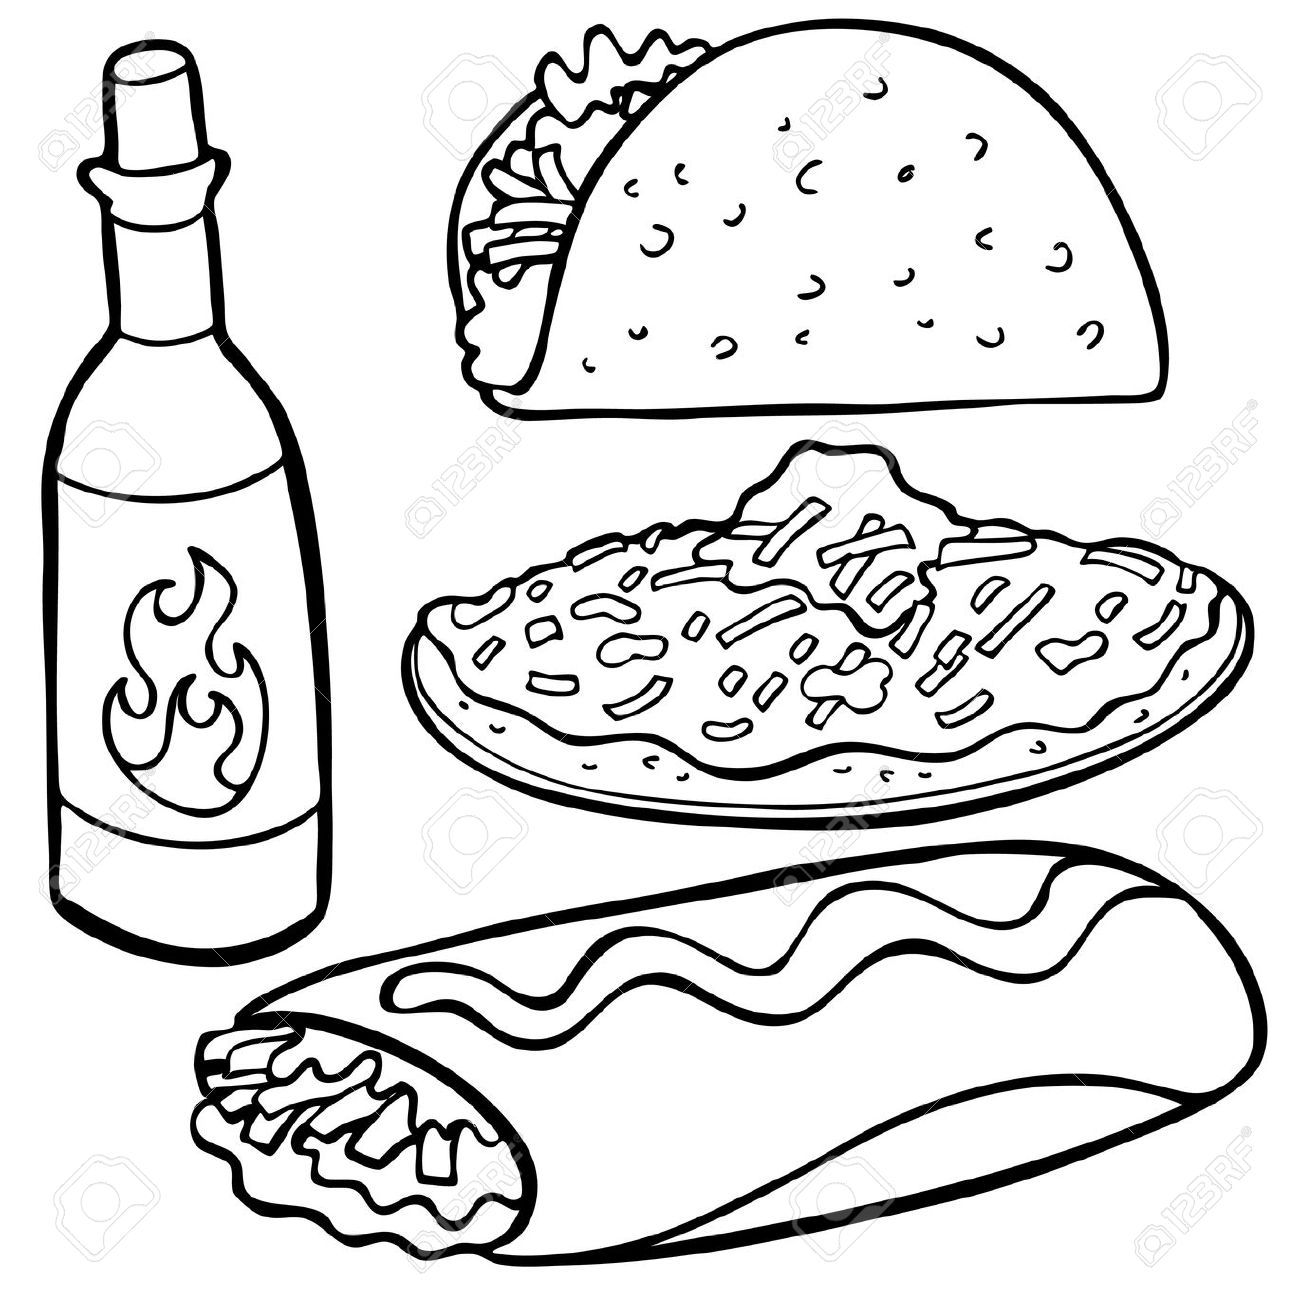 Vector and Tacos Clipart Black And White 9617 Favorite ClipartFan.com.